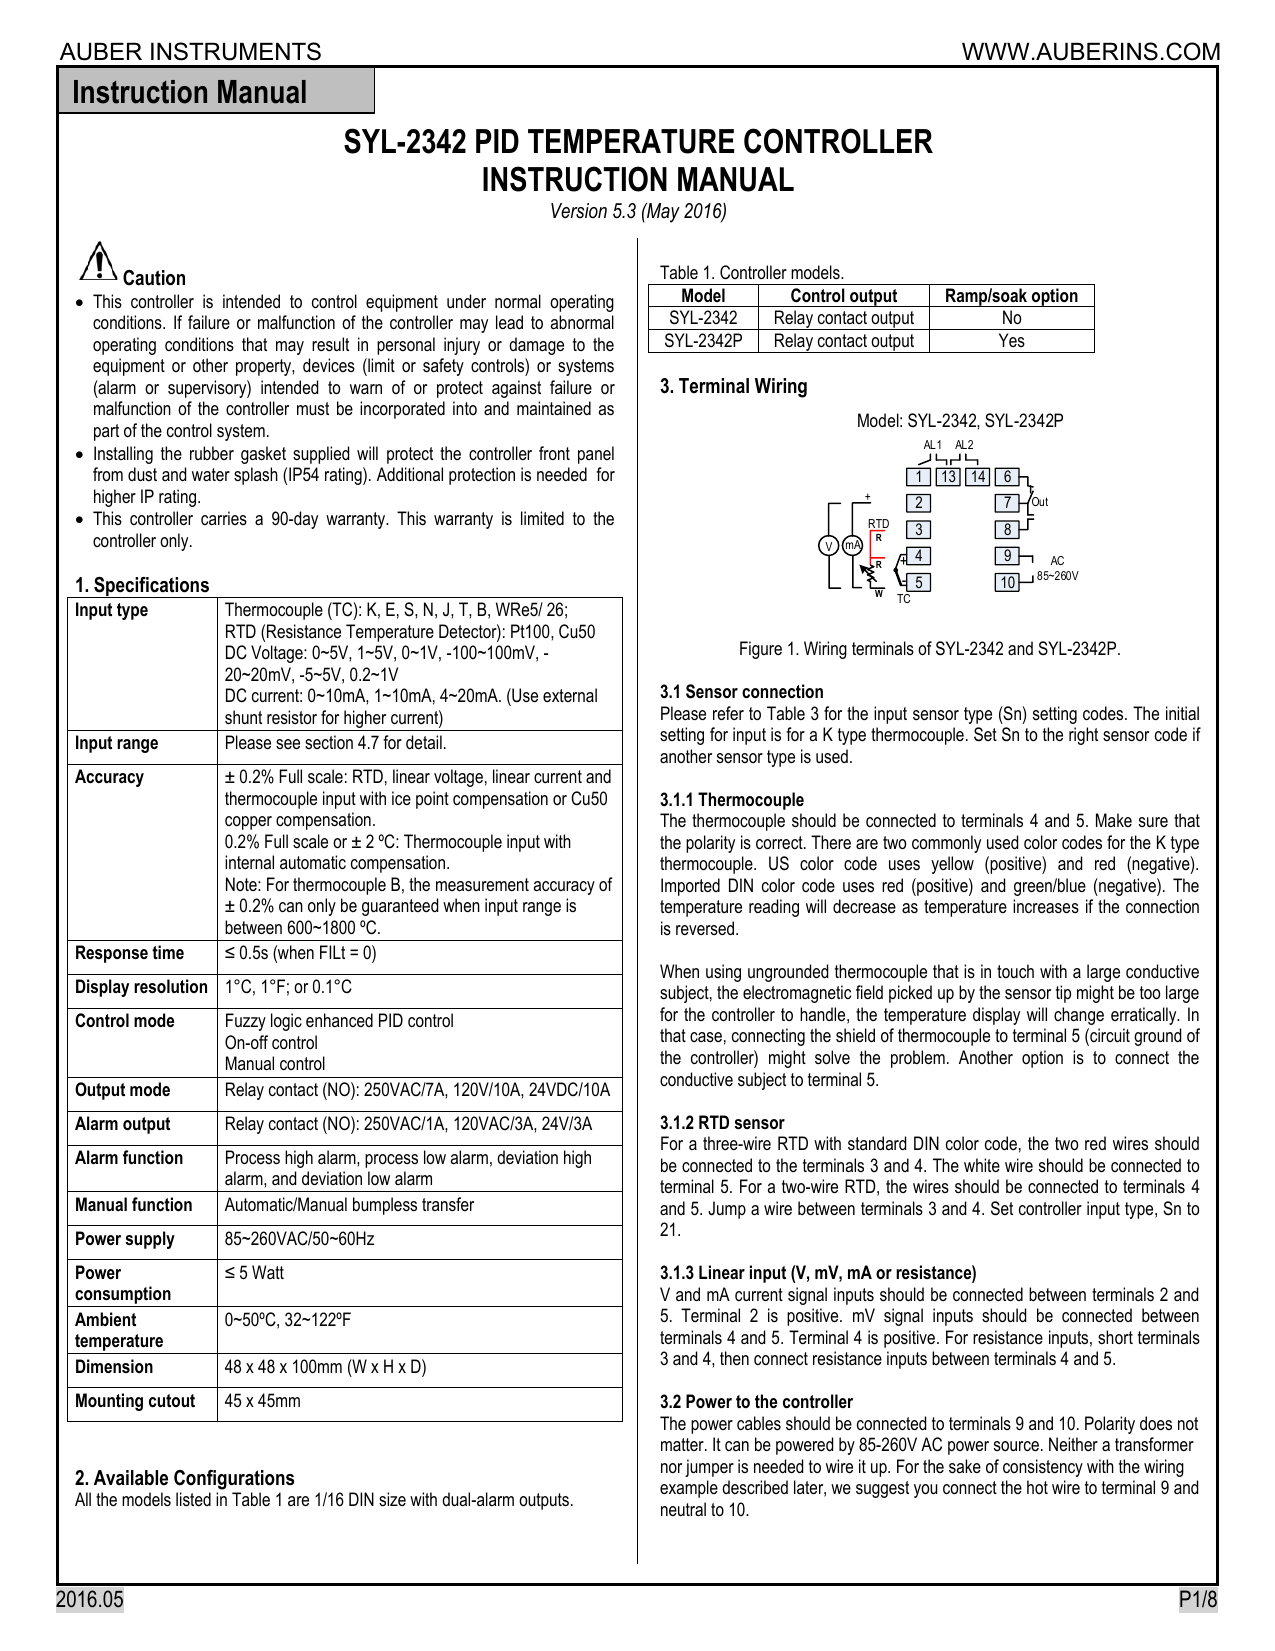 Wire Rtd Wiring Diagram Together With Thermocouple Wiring Diagram